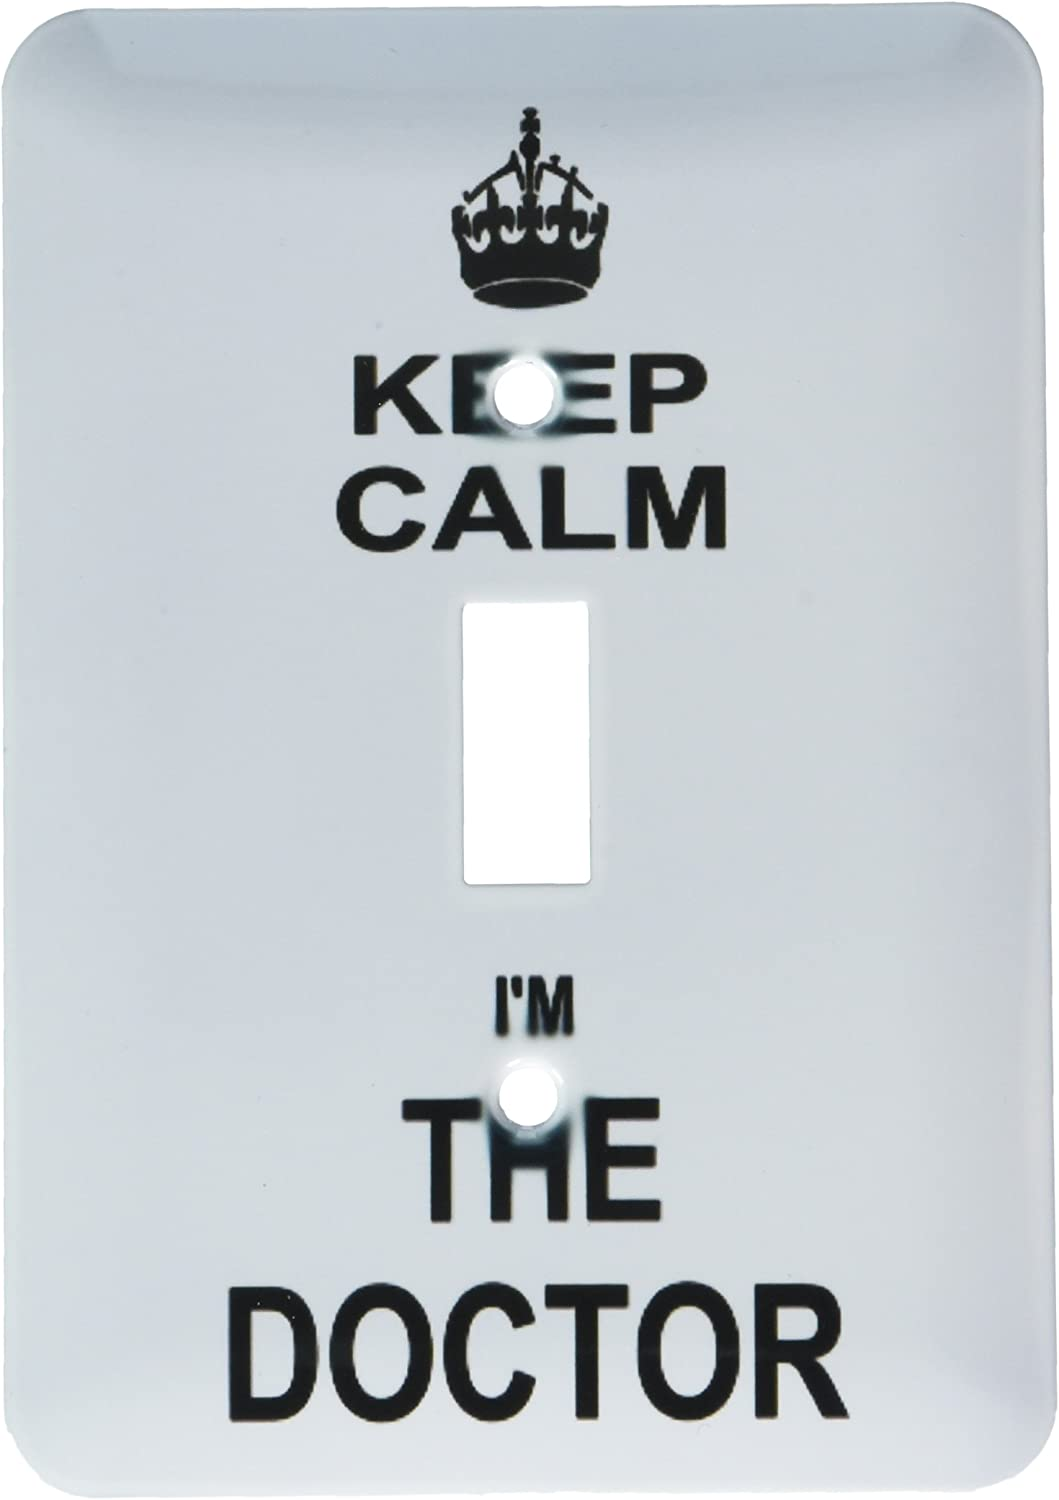 3drose Lsp 194475 1 Keep Calm I Am The Doctor Dr And Proud Fun Humorous Funny Humor Im Light Switch Cover Amazon Com